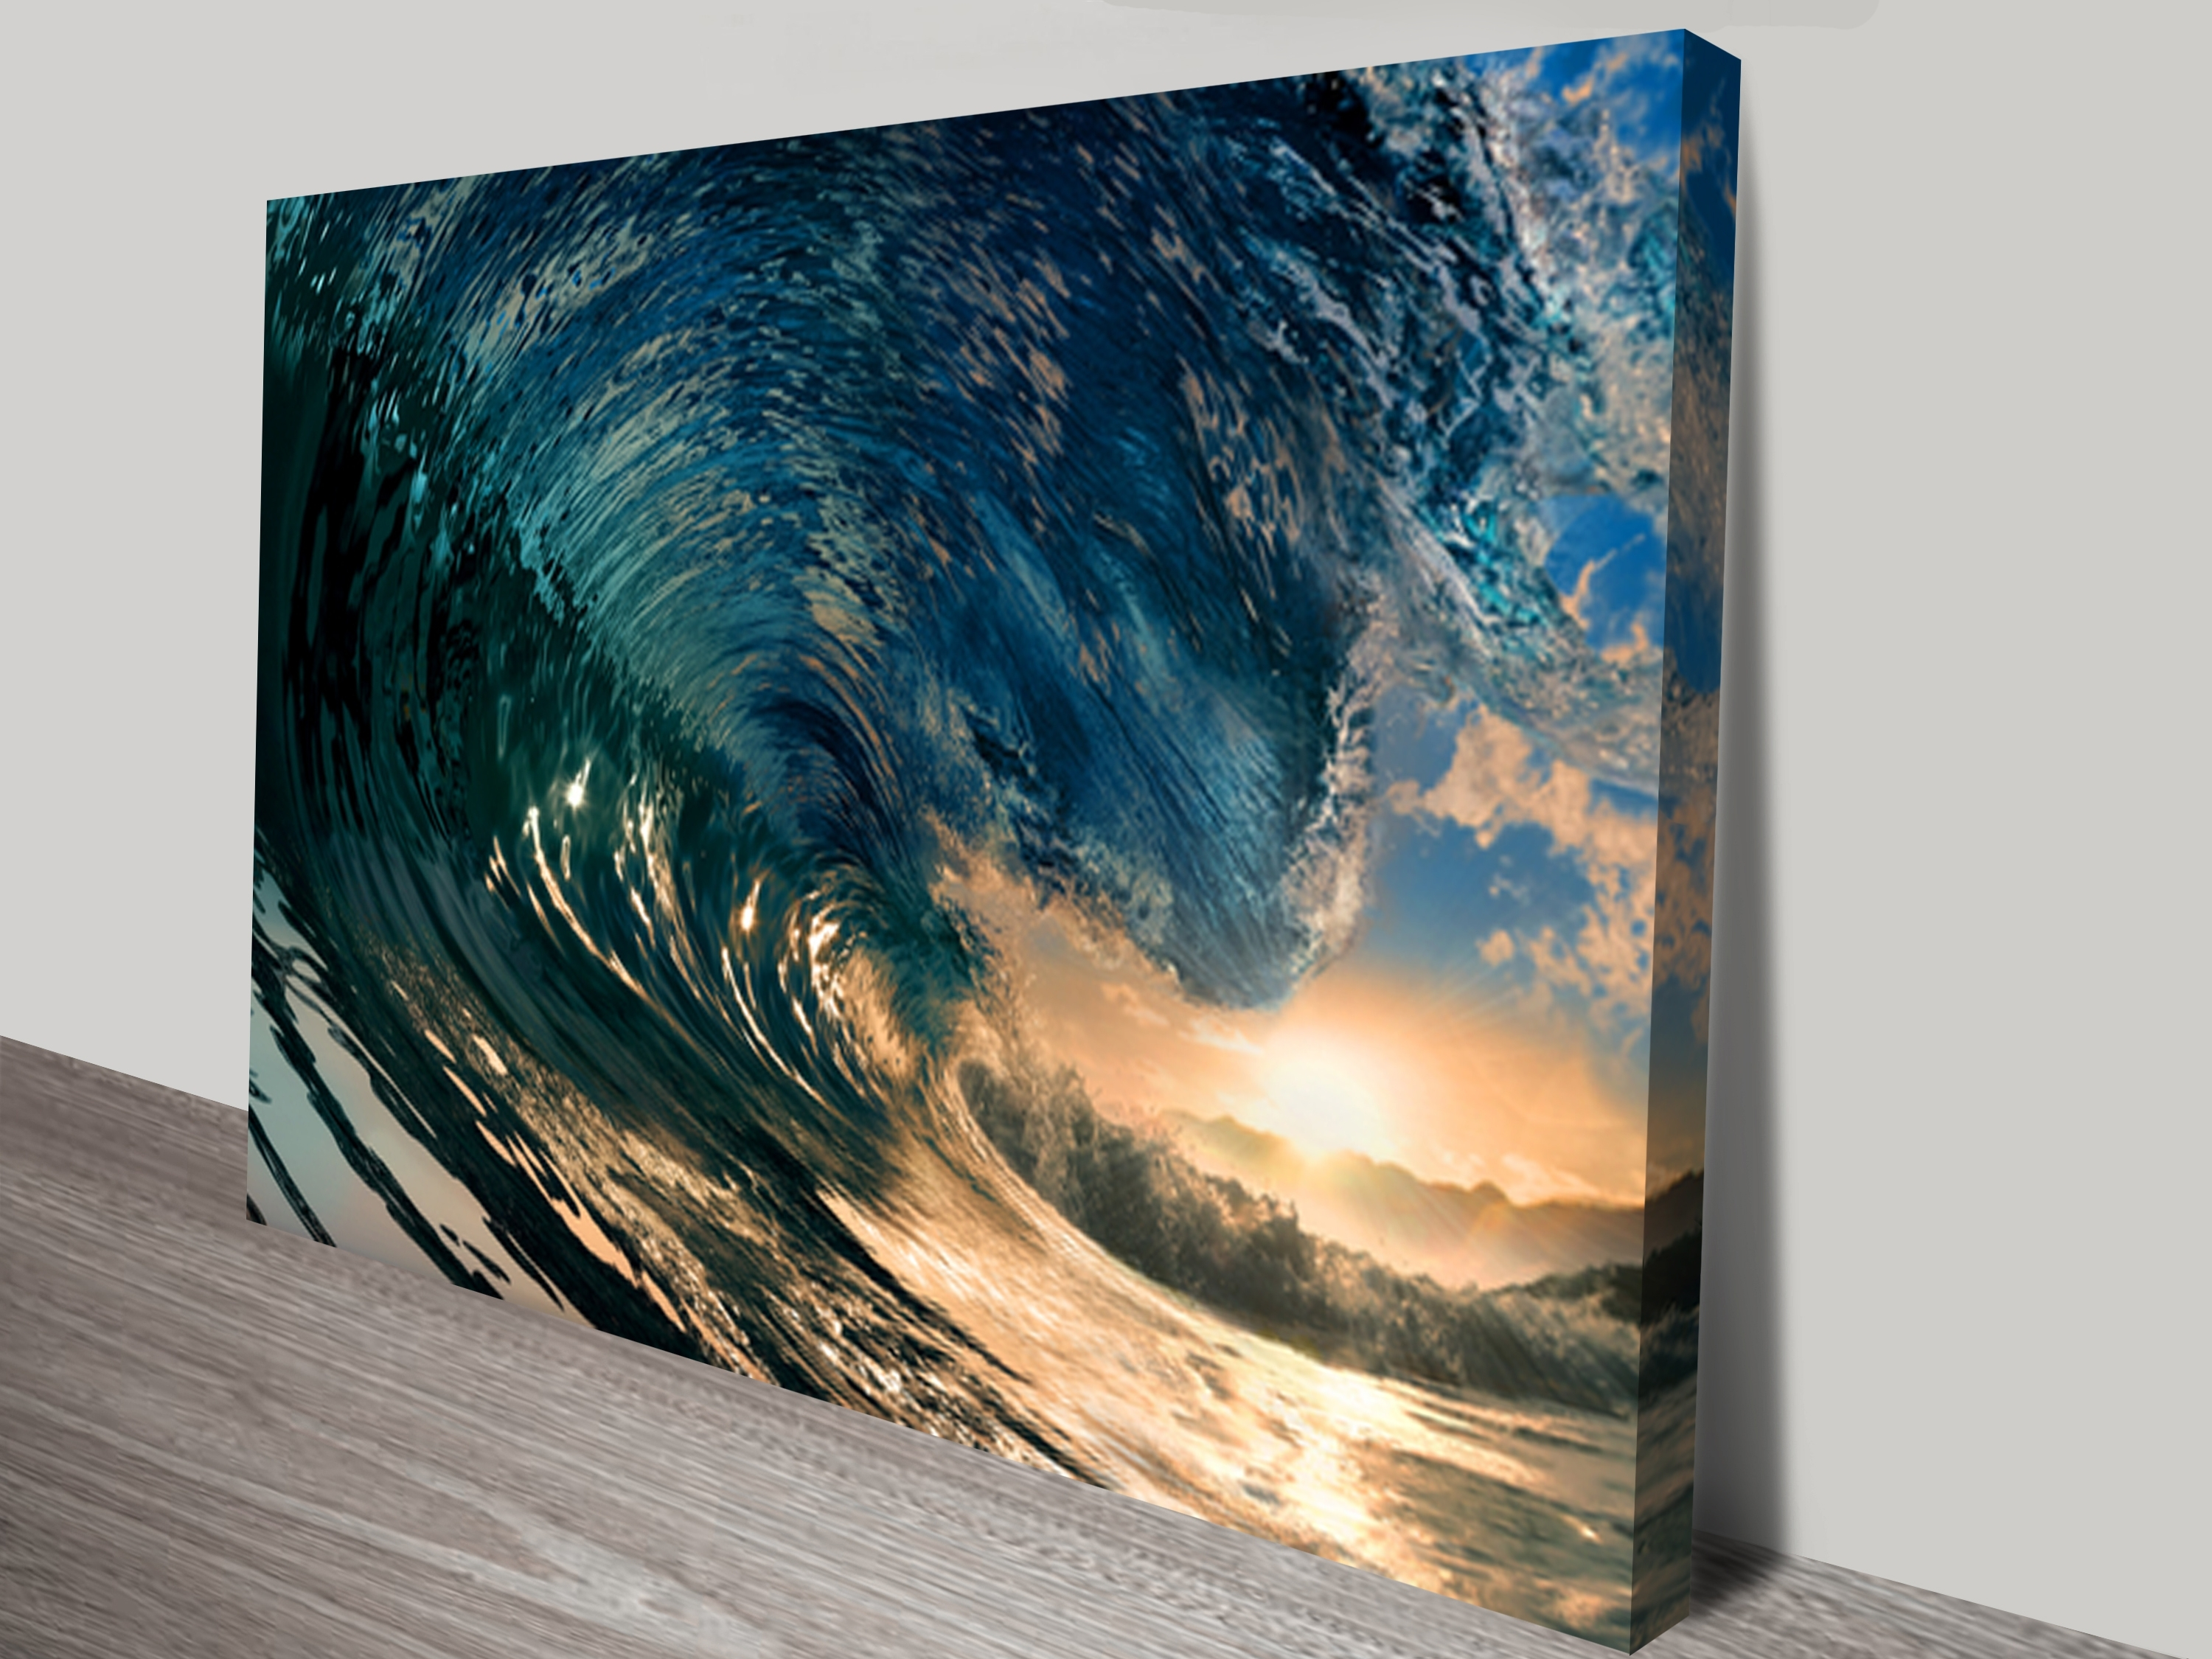 Crystal Waves Surfing Art Canvas Print | Sunset Wave Wall Art With Latest Canvas Wall Art In Melbourne (View 8 of 15)